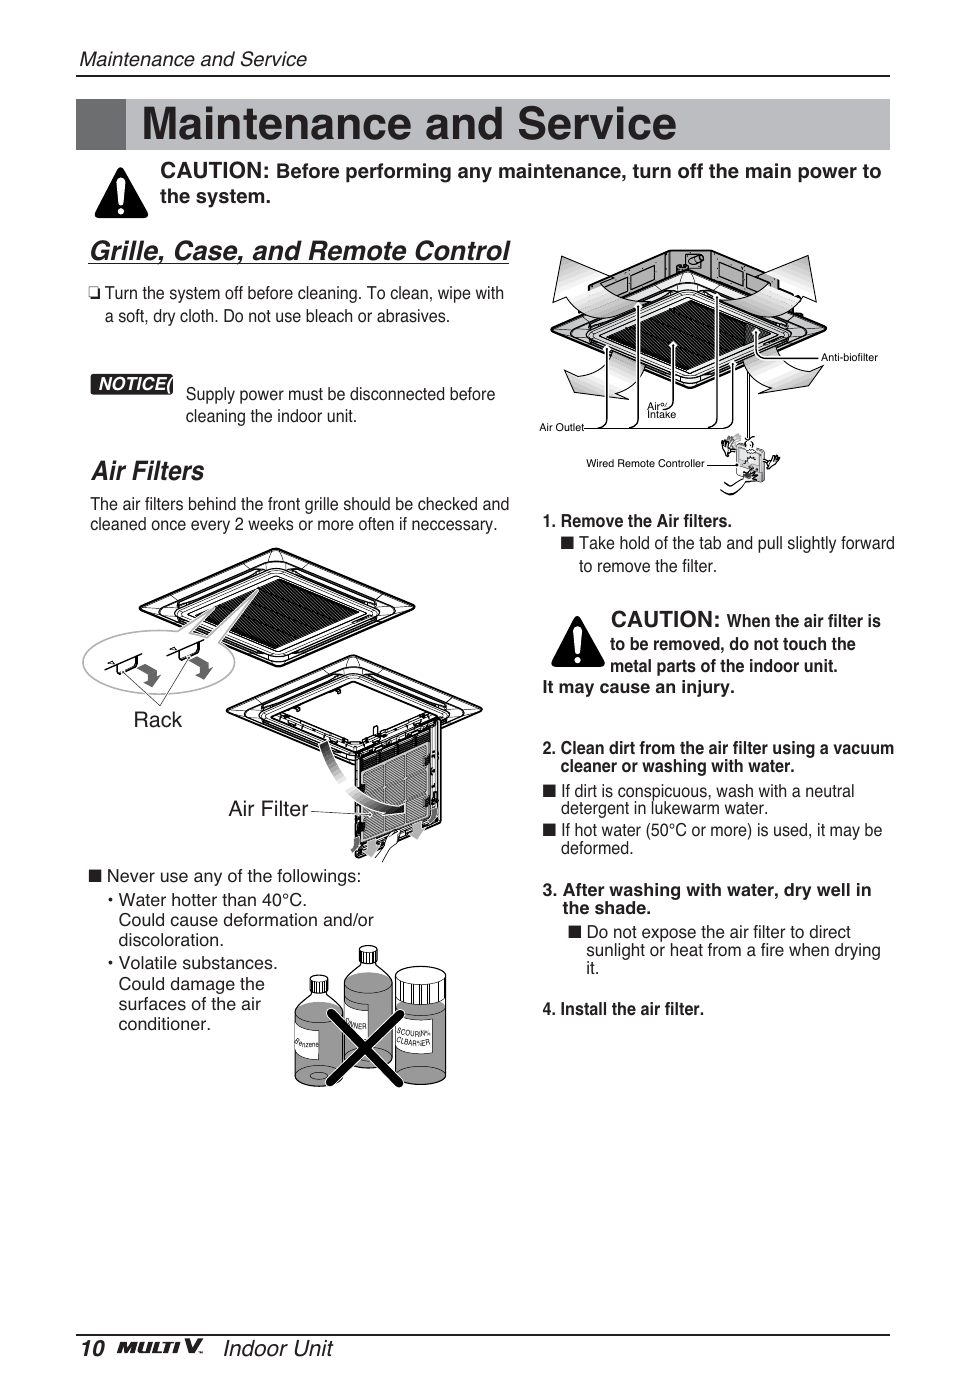 Maintenance and service, Grille, case, and remote control, Air